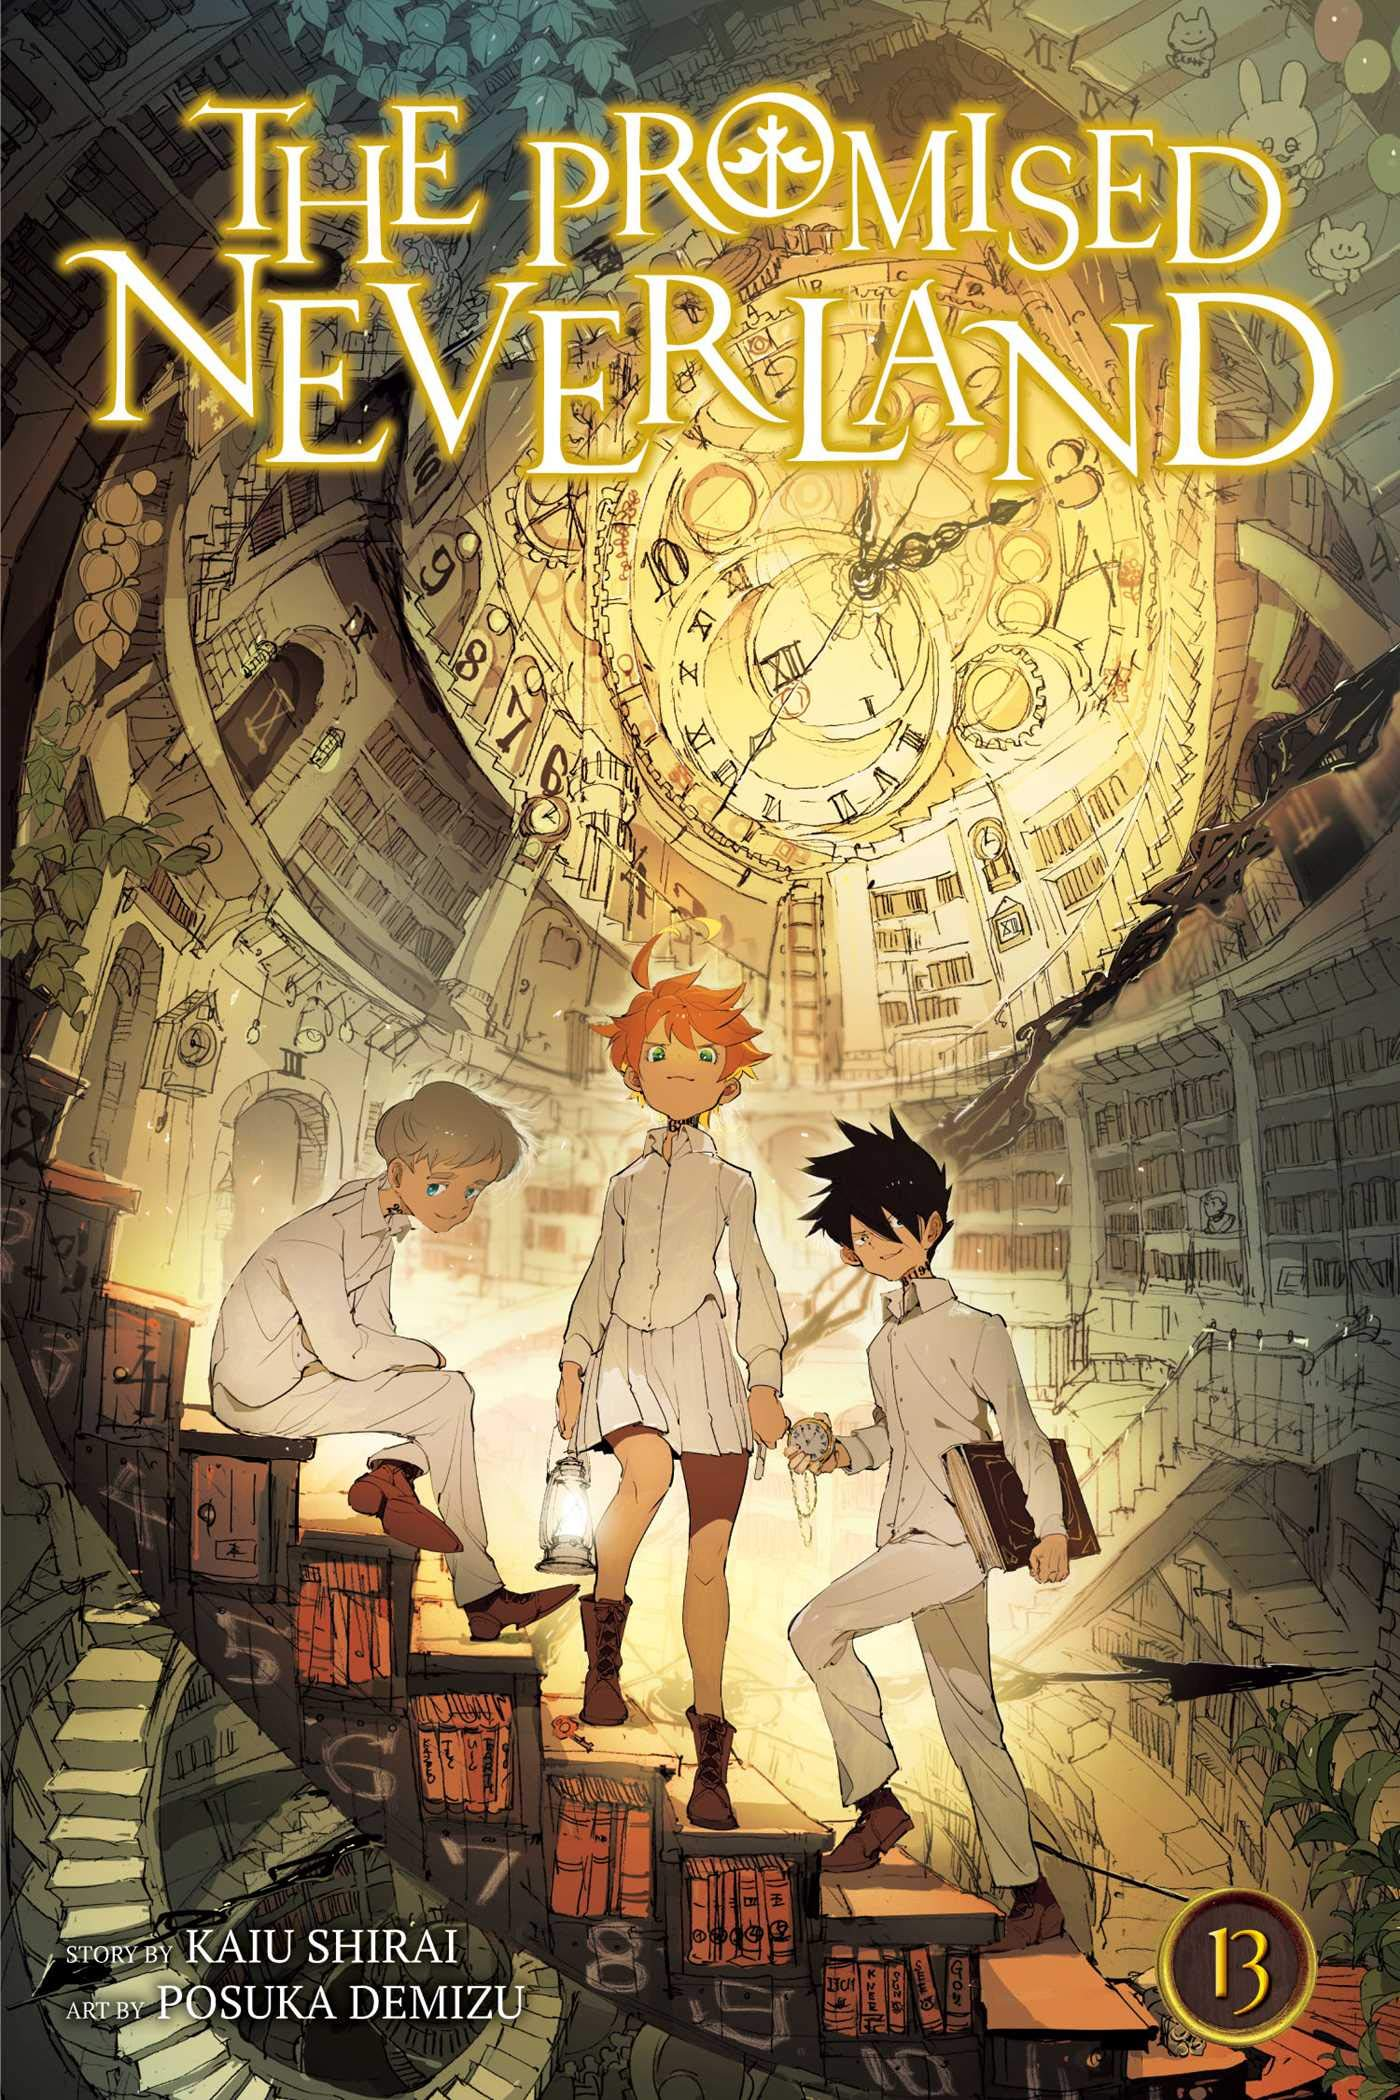 Amazon.com: The Promised Neverland, Vol. 13 (13) (9781974708895 ...